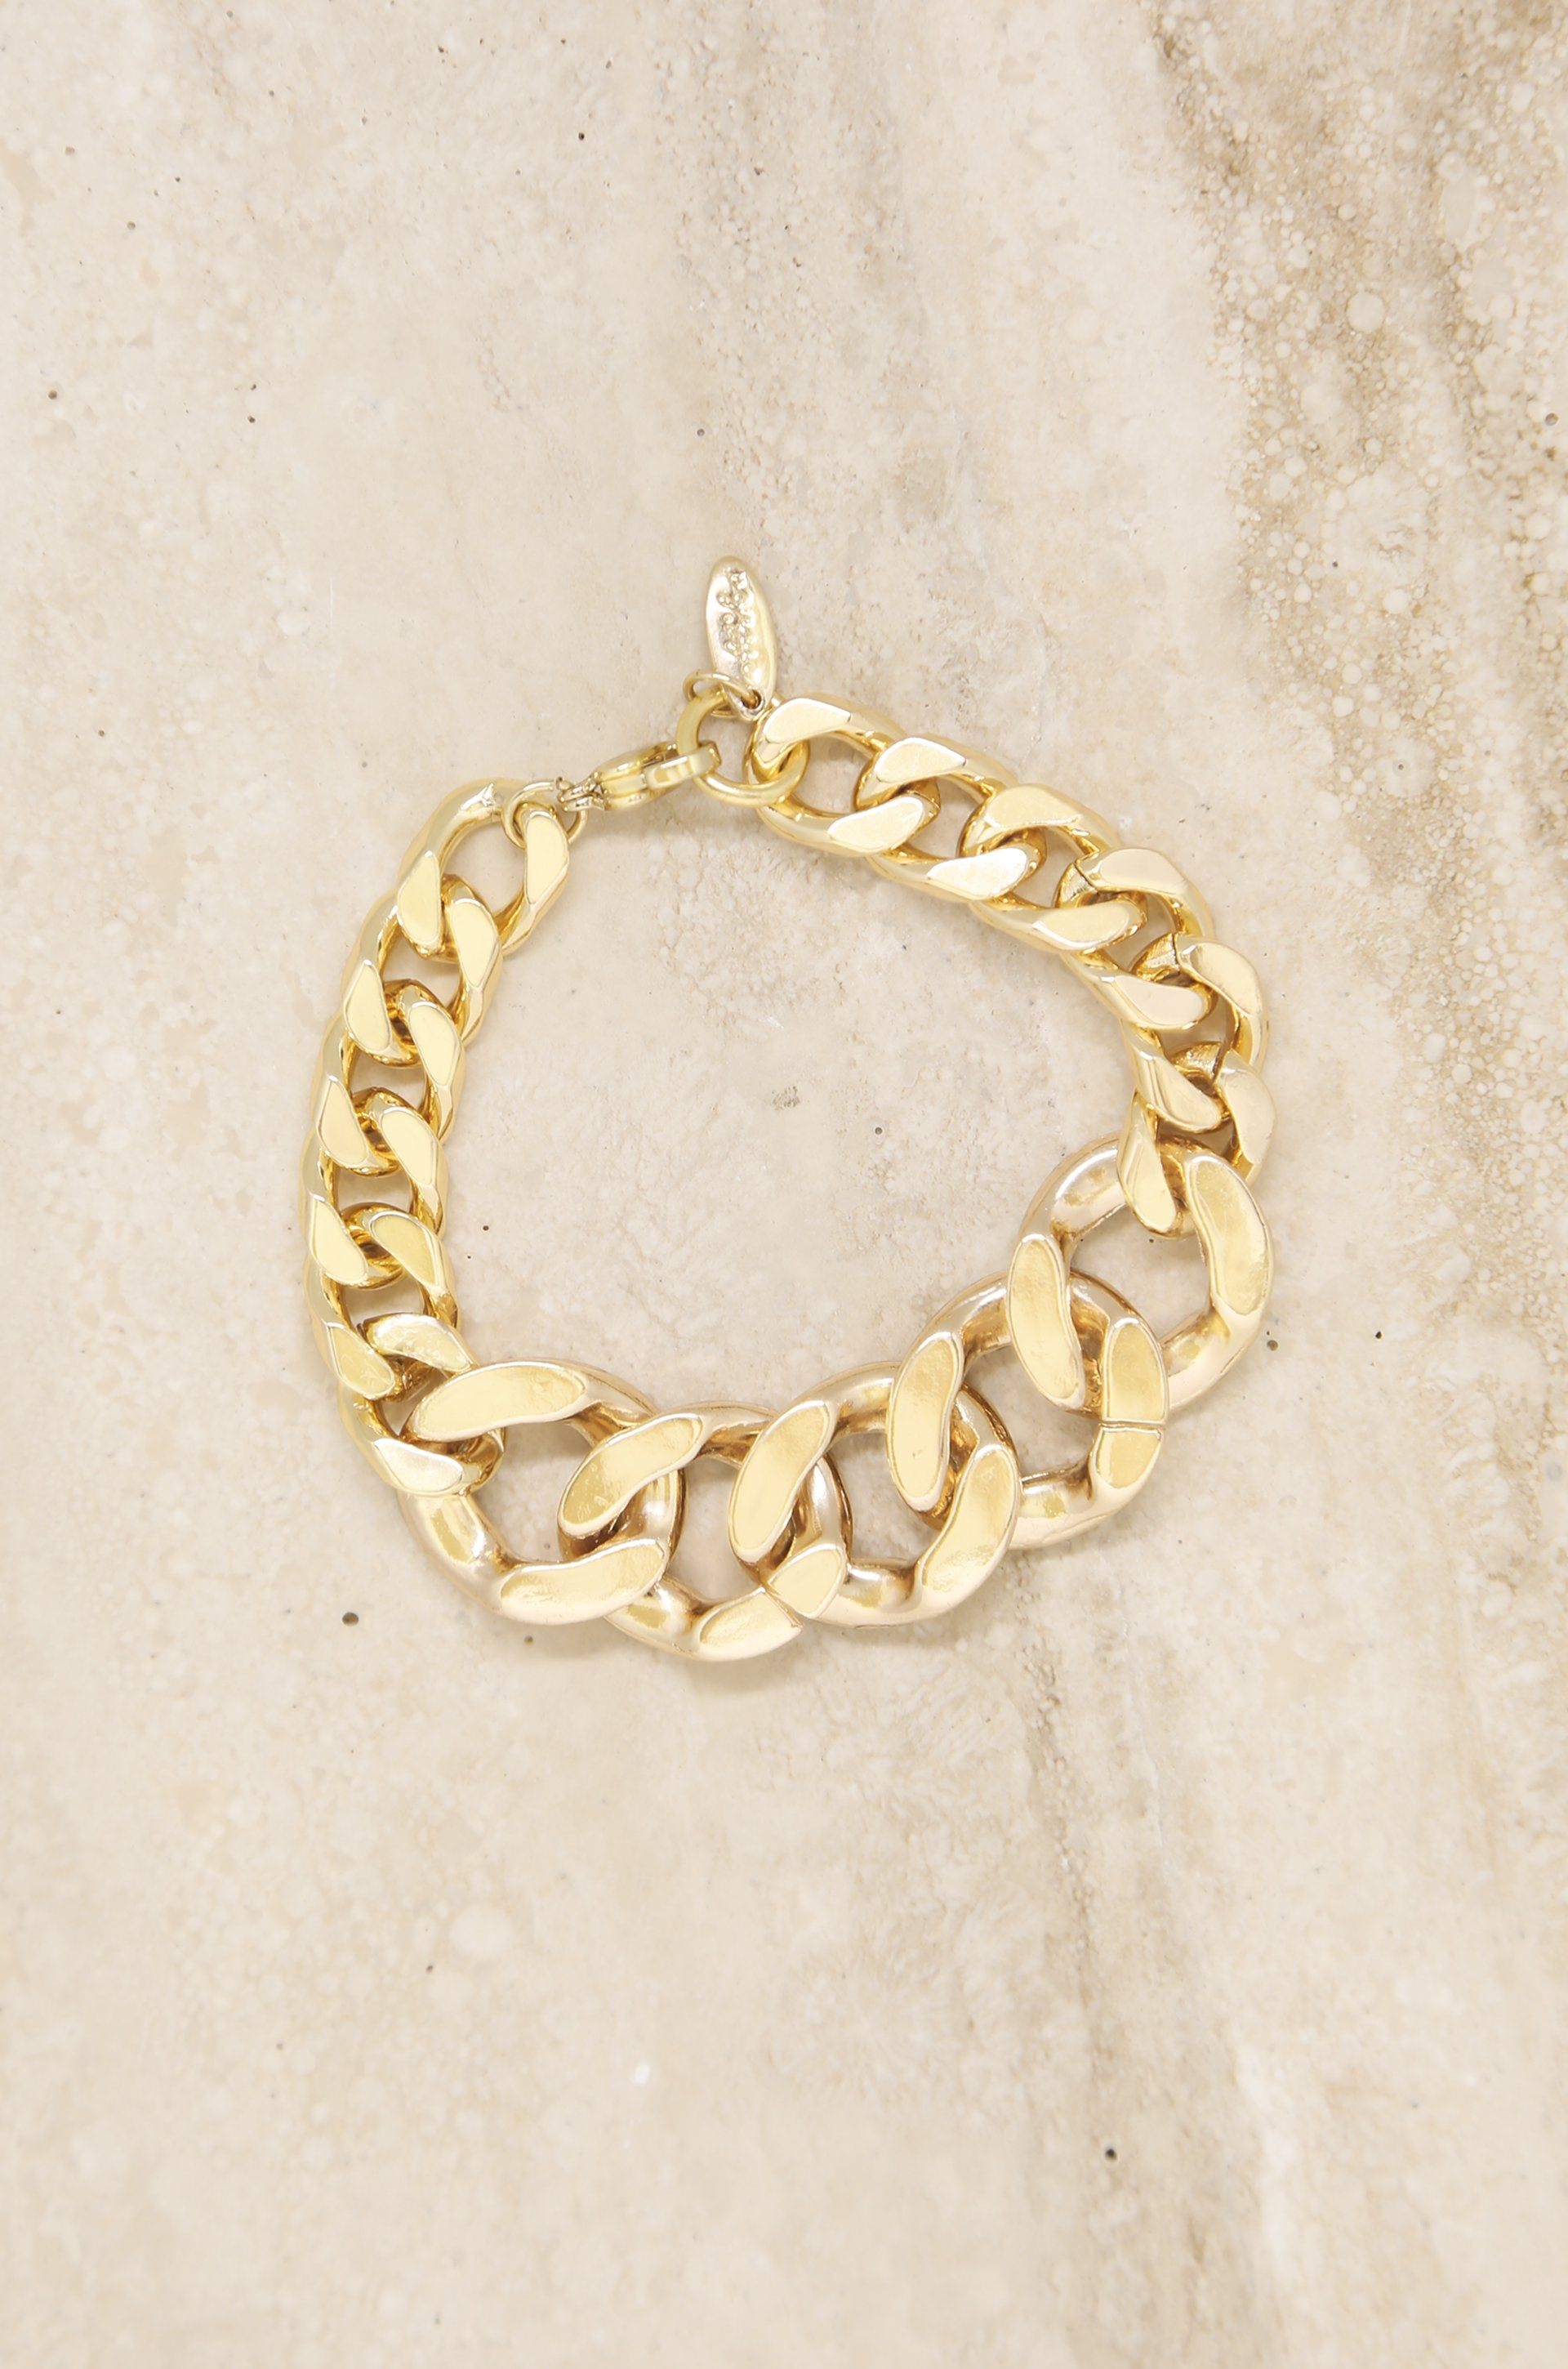 Ettika Big, Bad and Bold 18k Gold Chain Link Bracelet - Izzy & Gab